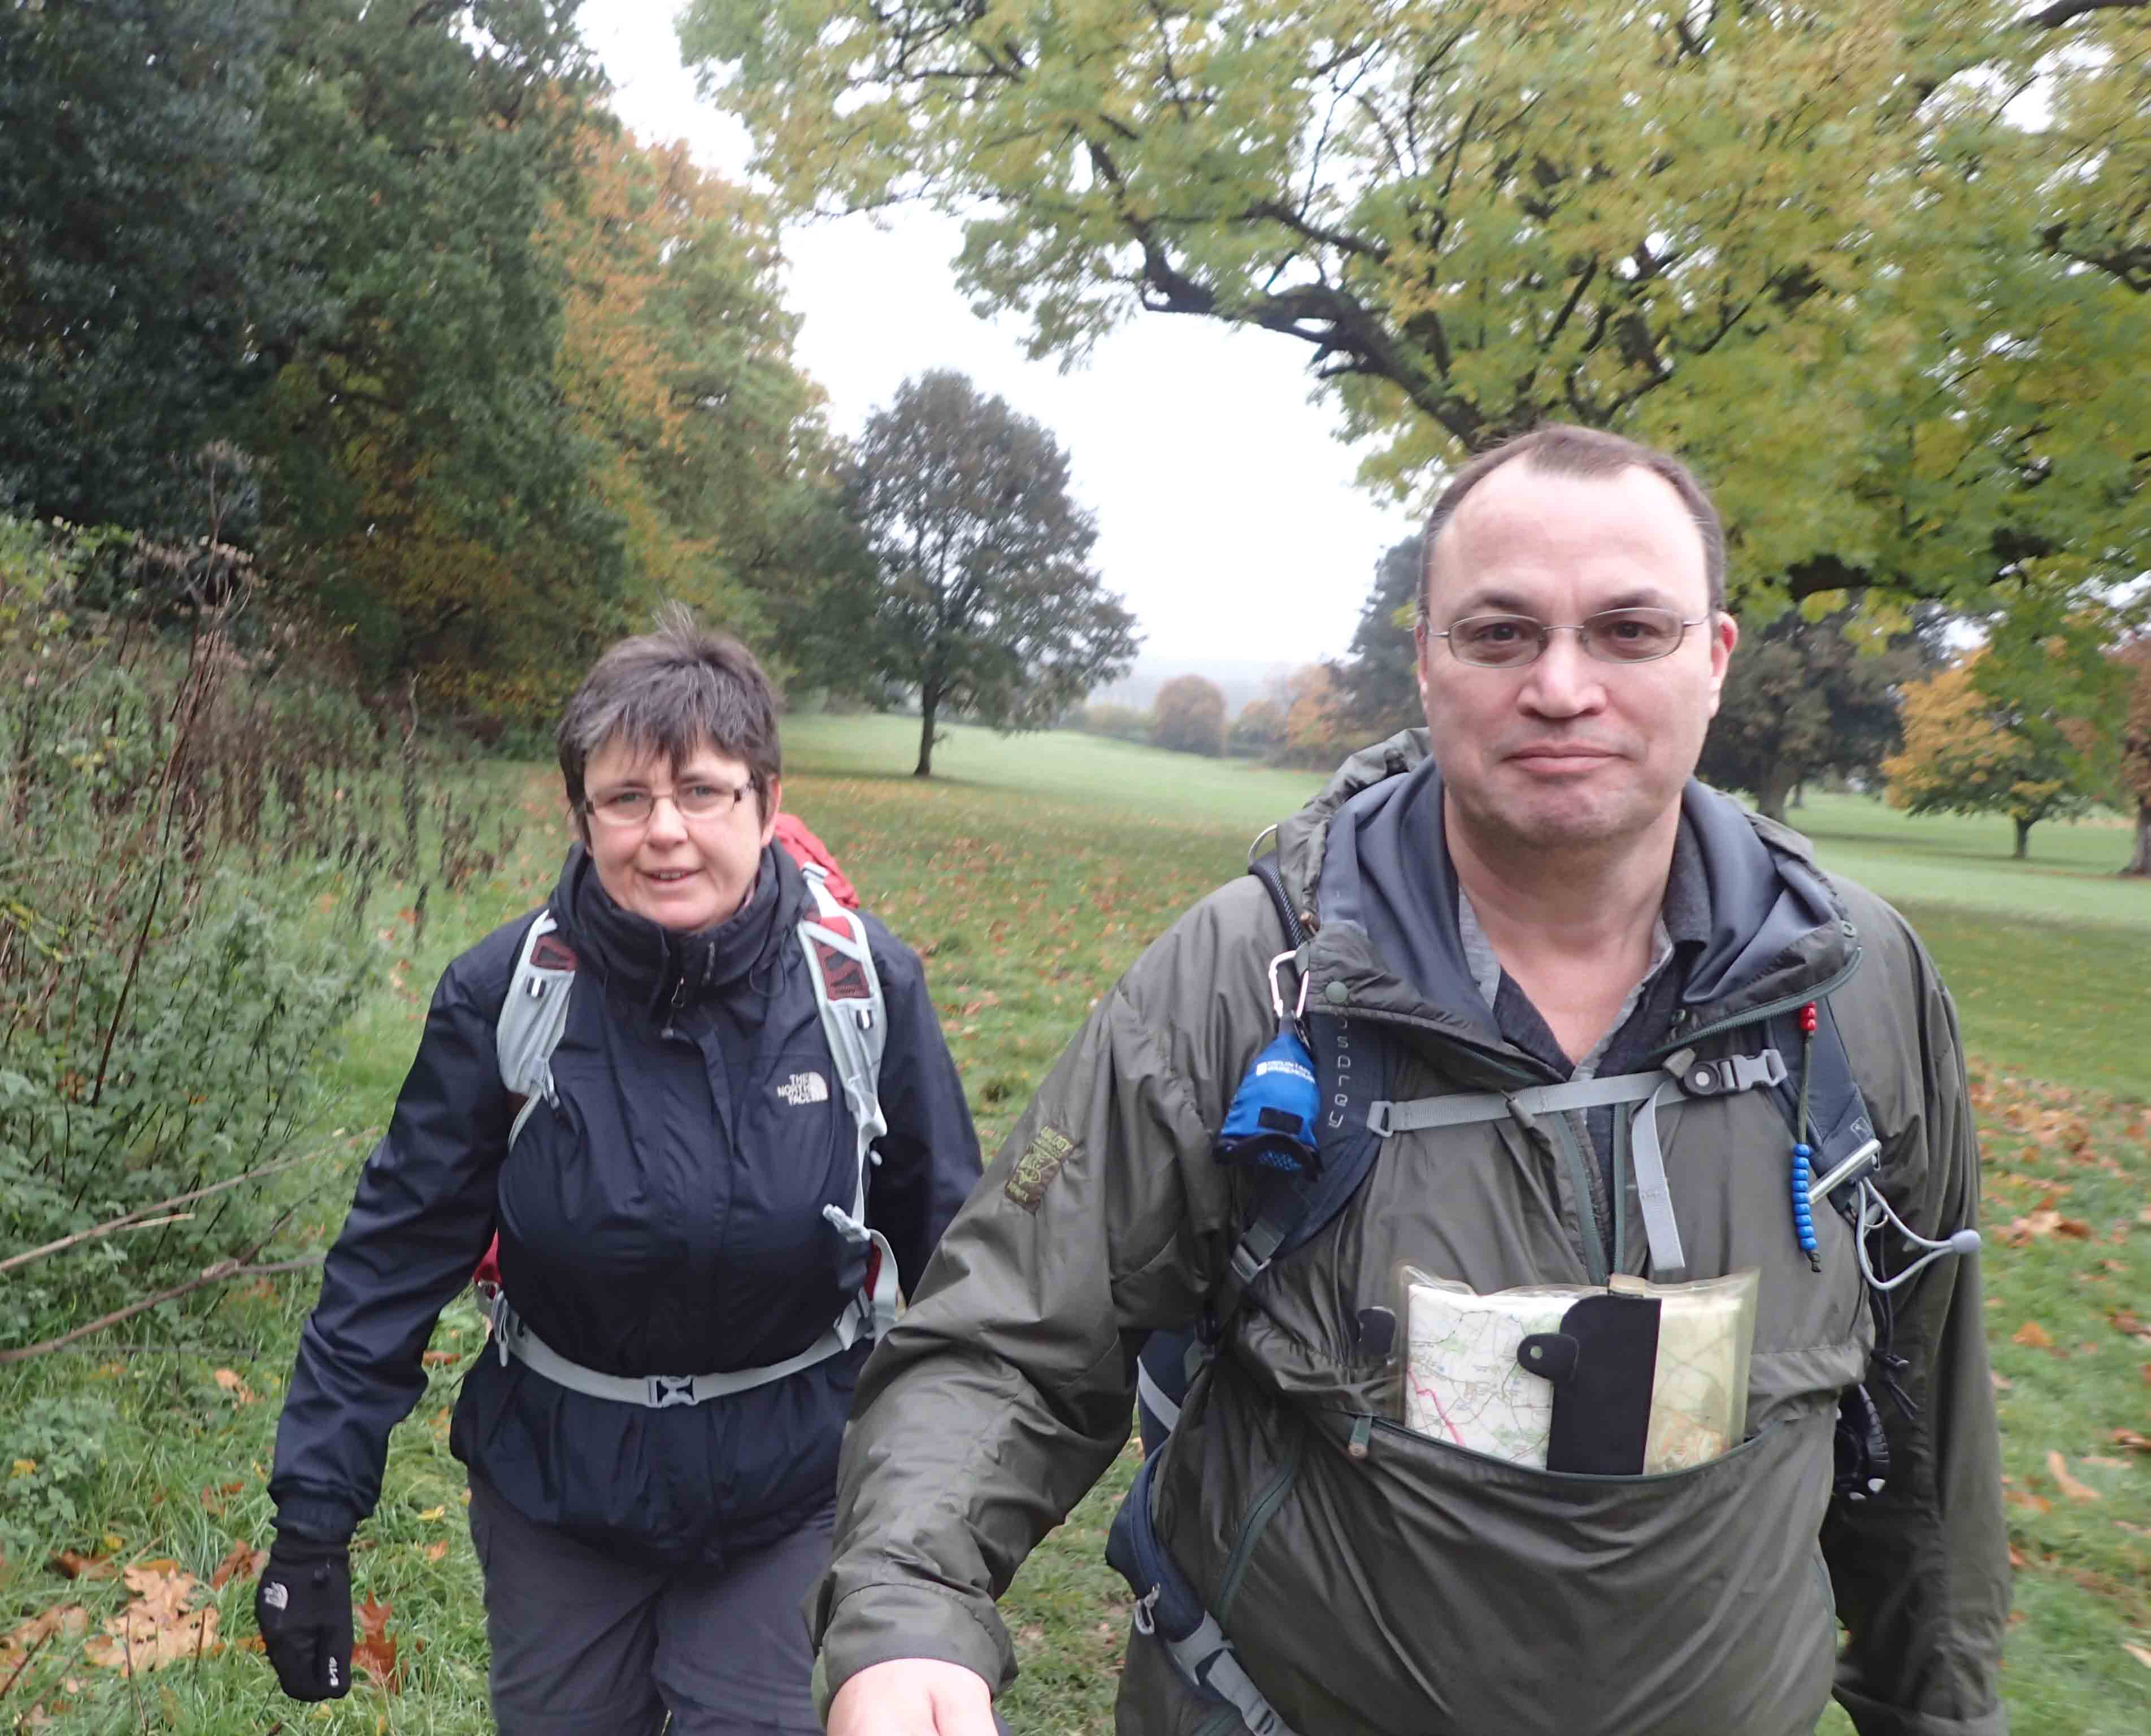 Mrs Three Points of the Compass joins me for part of my week on the London Countryway